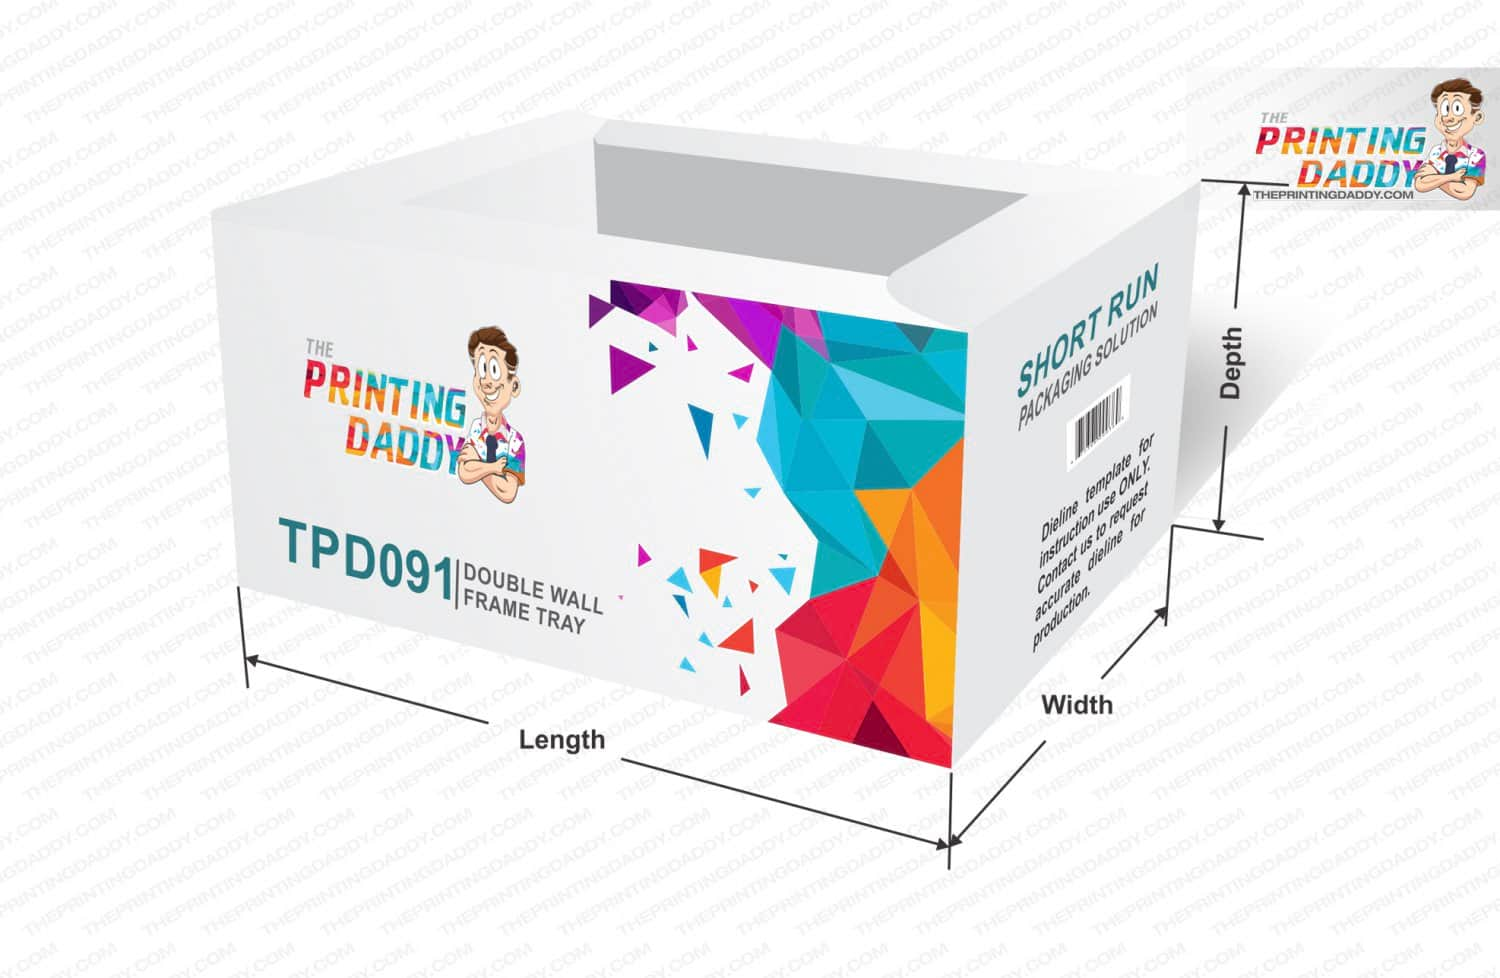 Double Wall Frame Tray The Printing Daddy